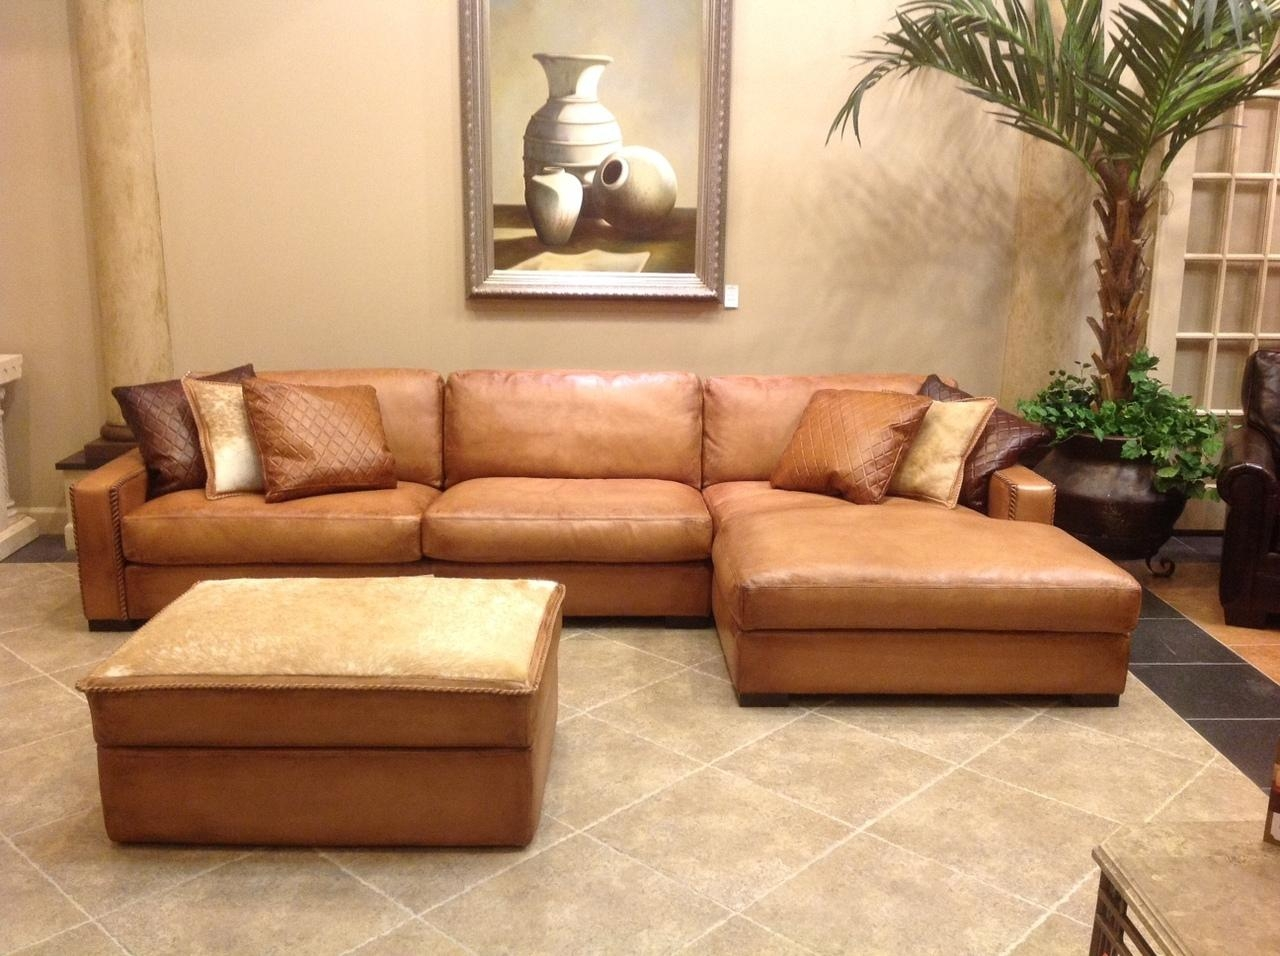 Furniture: Comfortable Deep Seat Sectional For Your Living Room With Regard To Deep Seat Leather Sectional (View 2 of 15)